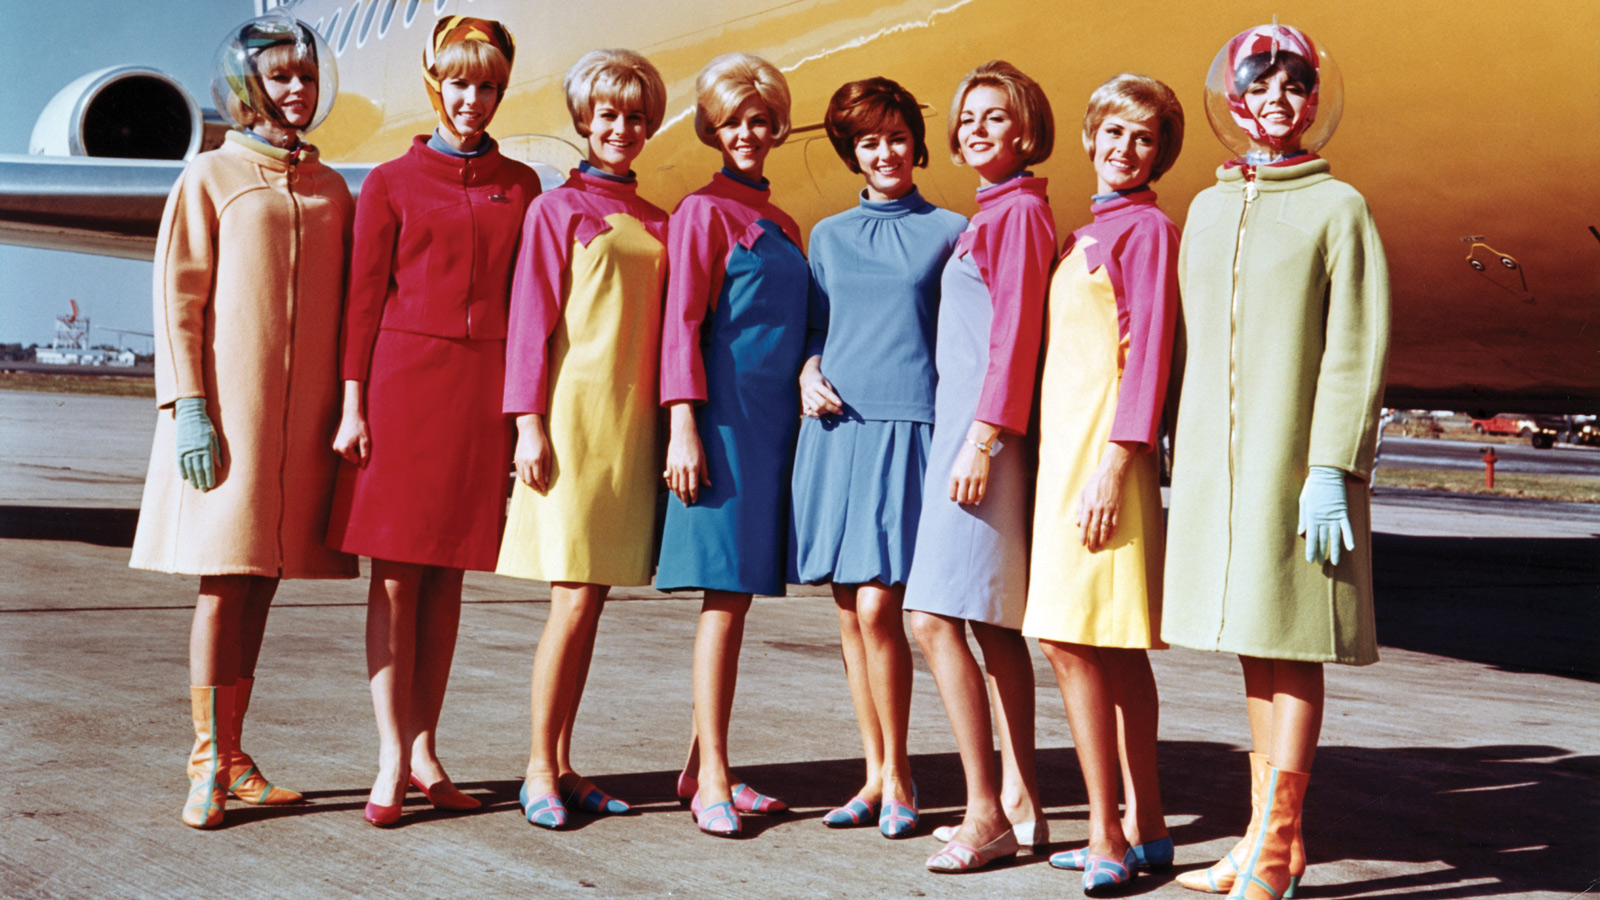 Vintage Air Hostess Fashion From 1930 To Now Cnn Travel